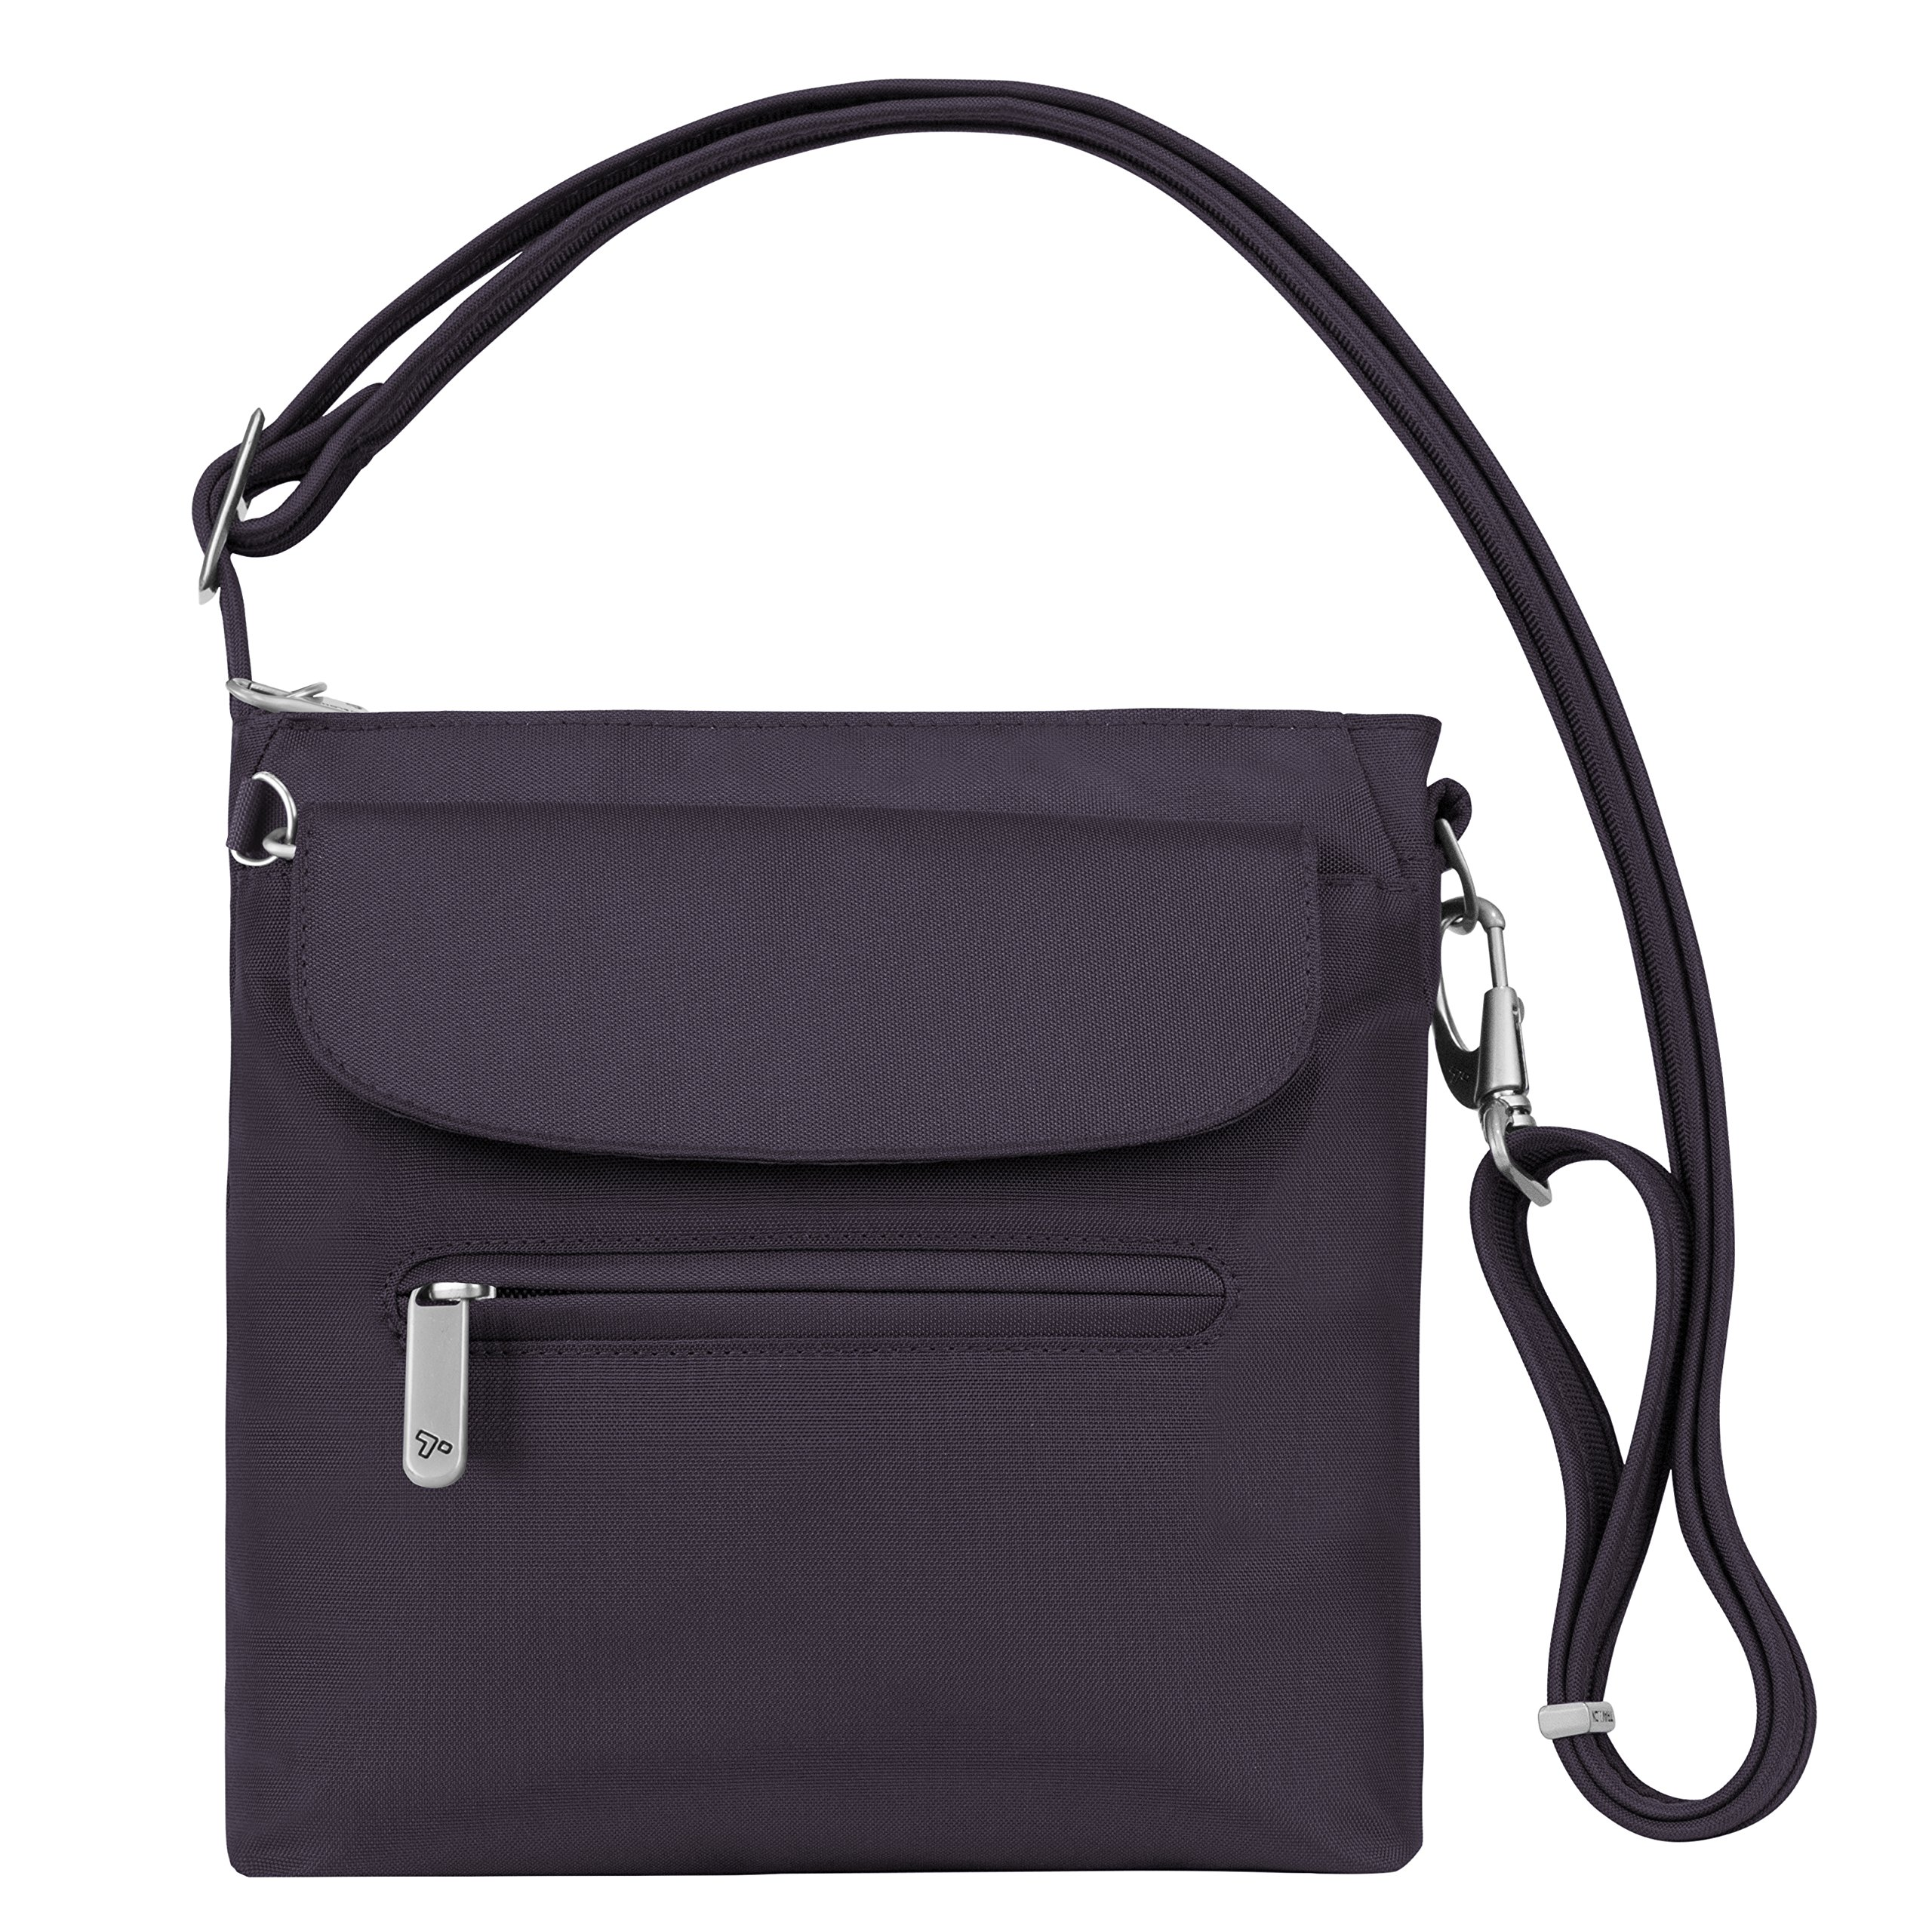 Travelon Women's Anti-Theft Classic Mini Shoulder Bag Sling Tote, Purple, One Size by Travelon